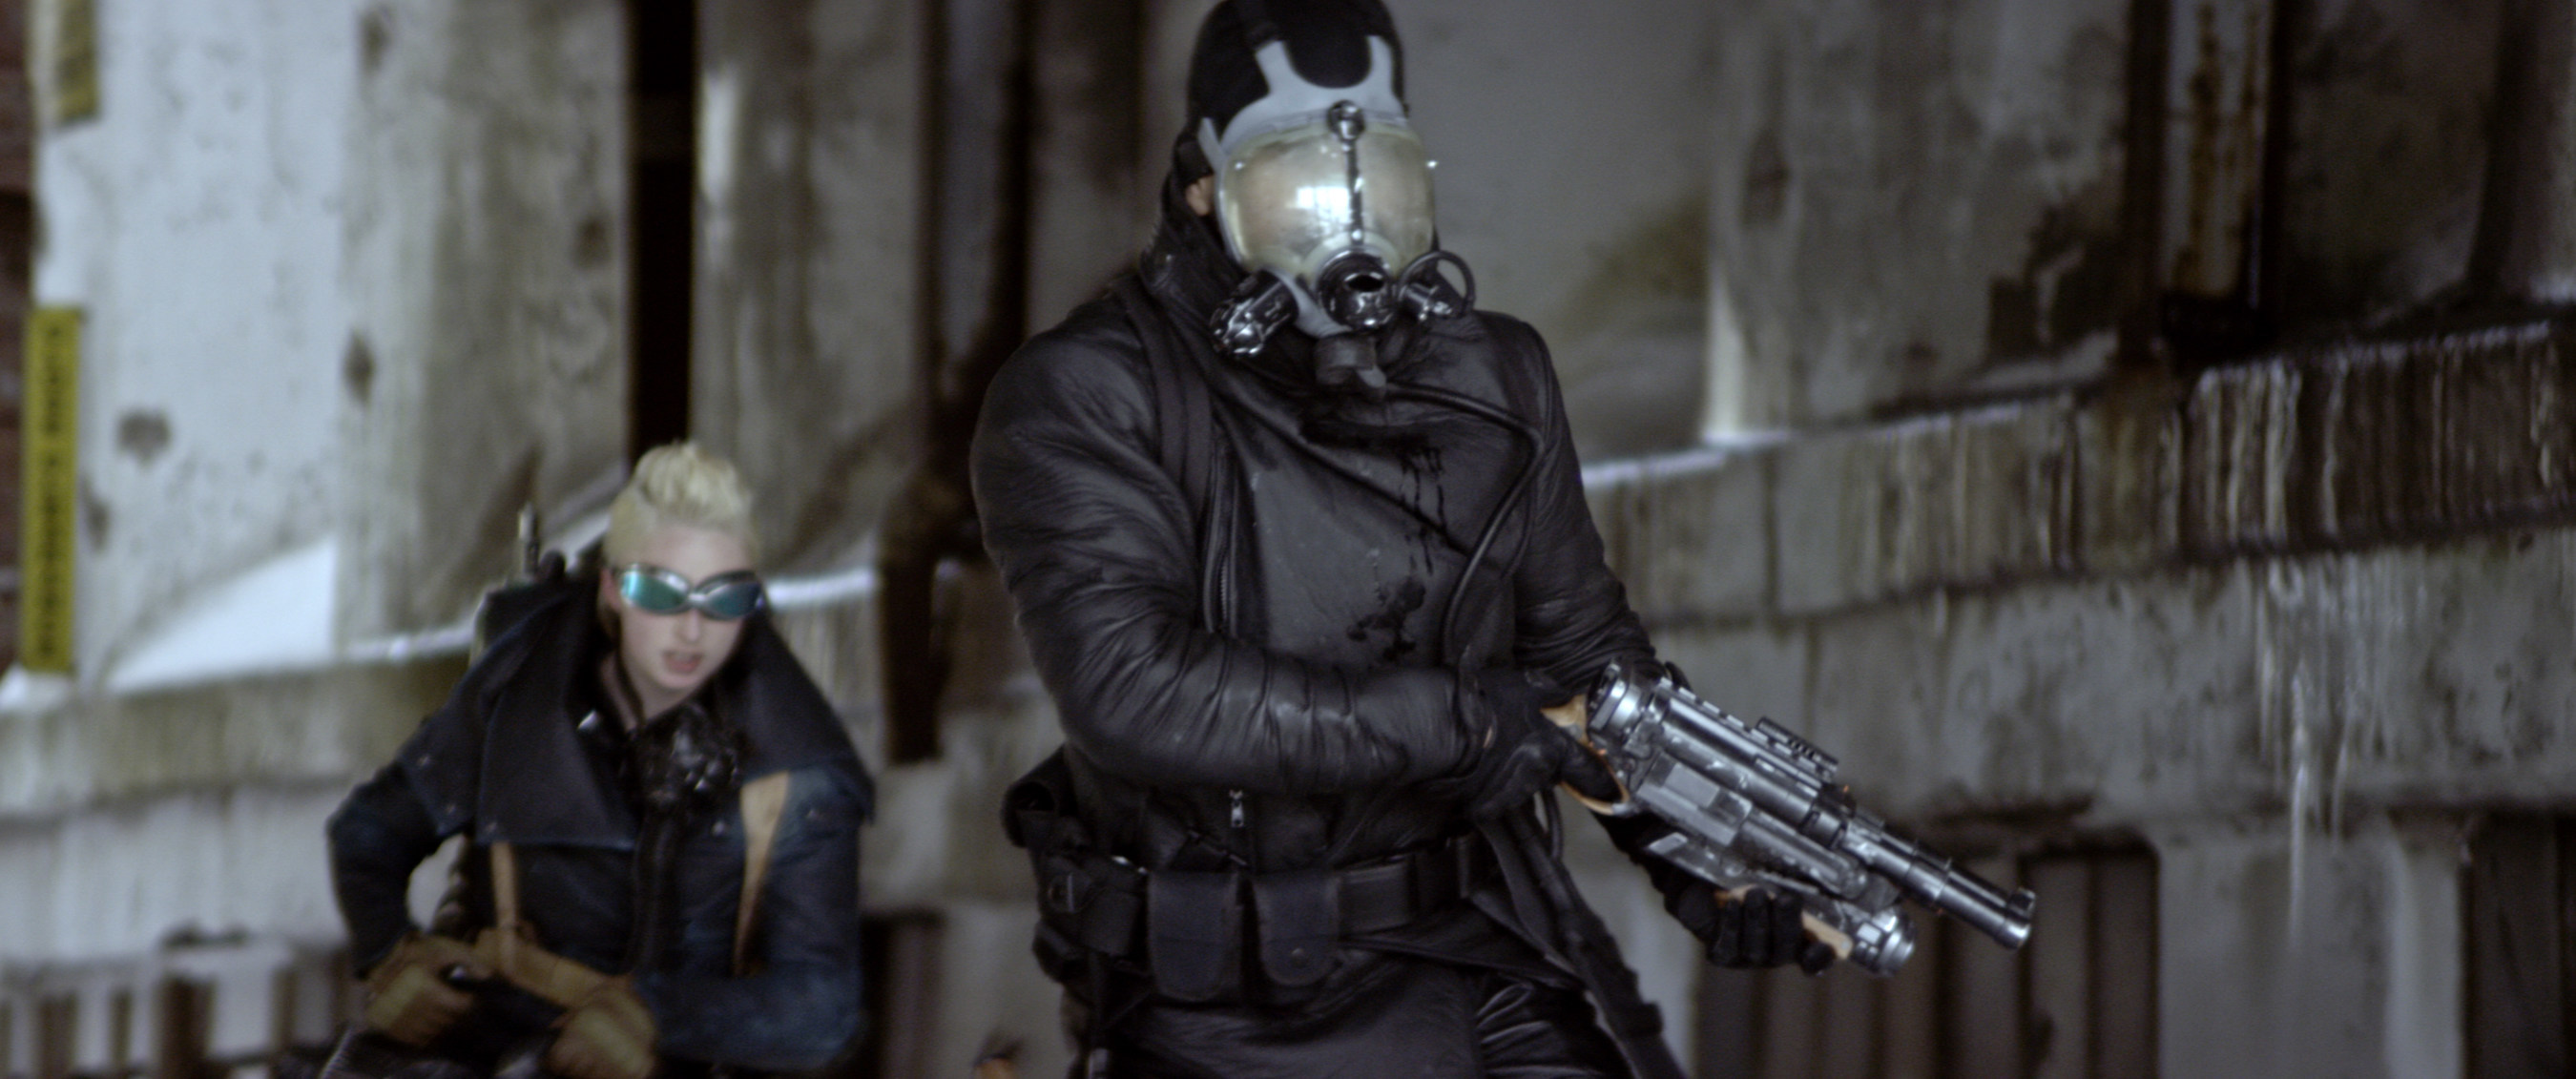 Indie Sci-Fi 2307: WINTER'S DREAM Wins in Los Angeles and Gears Up for NY Festival Premiere